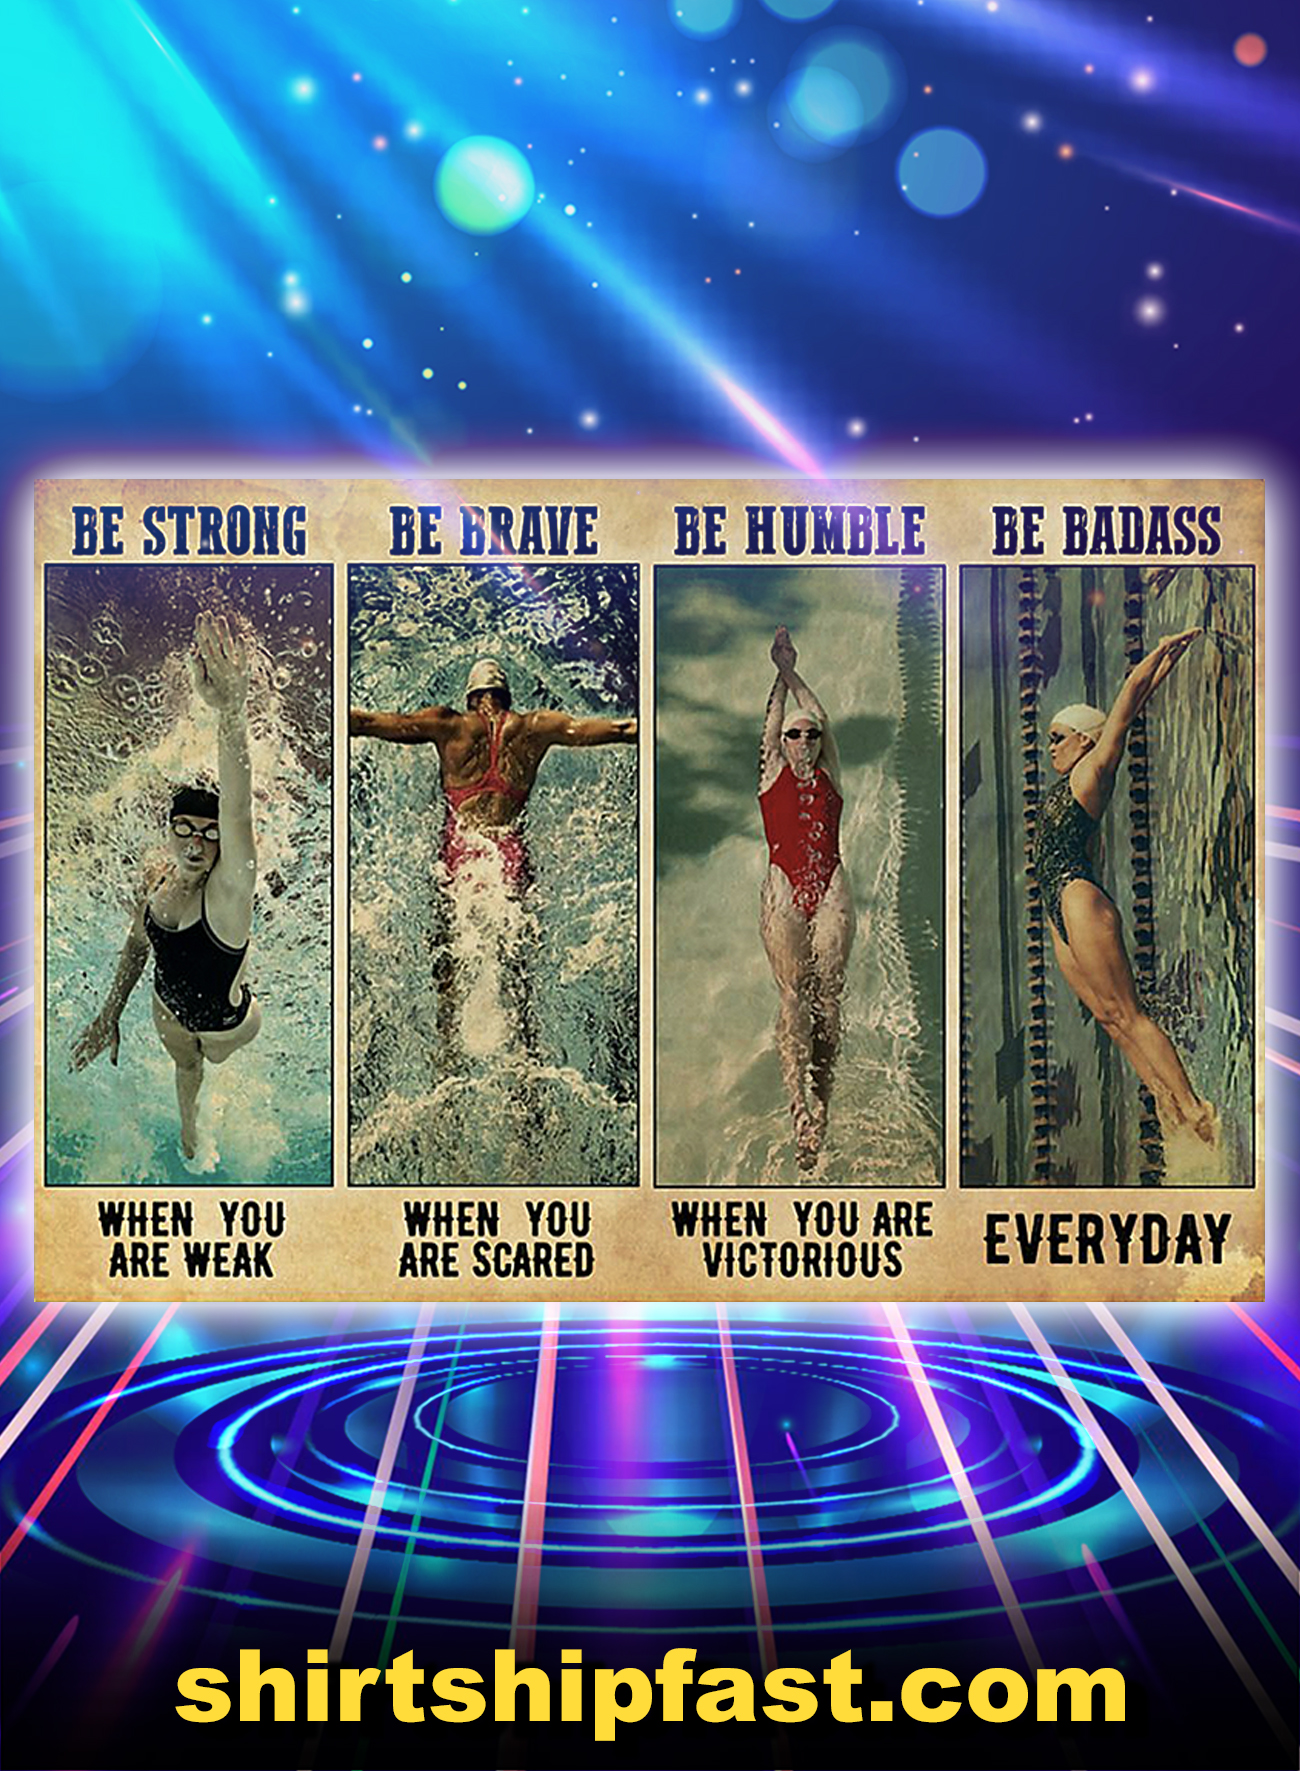 Be strong be brave be humble be badass swimming poster - A4